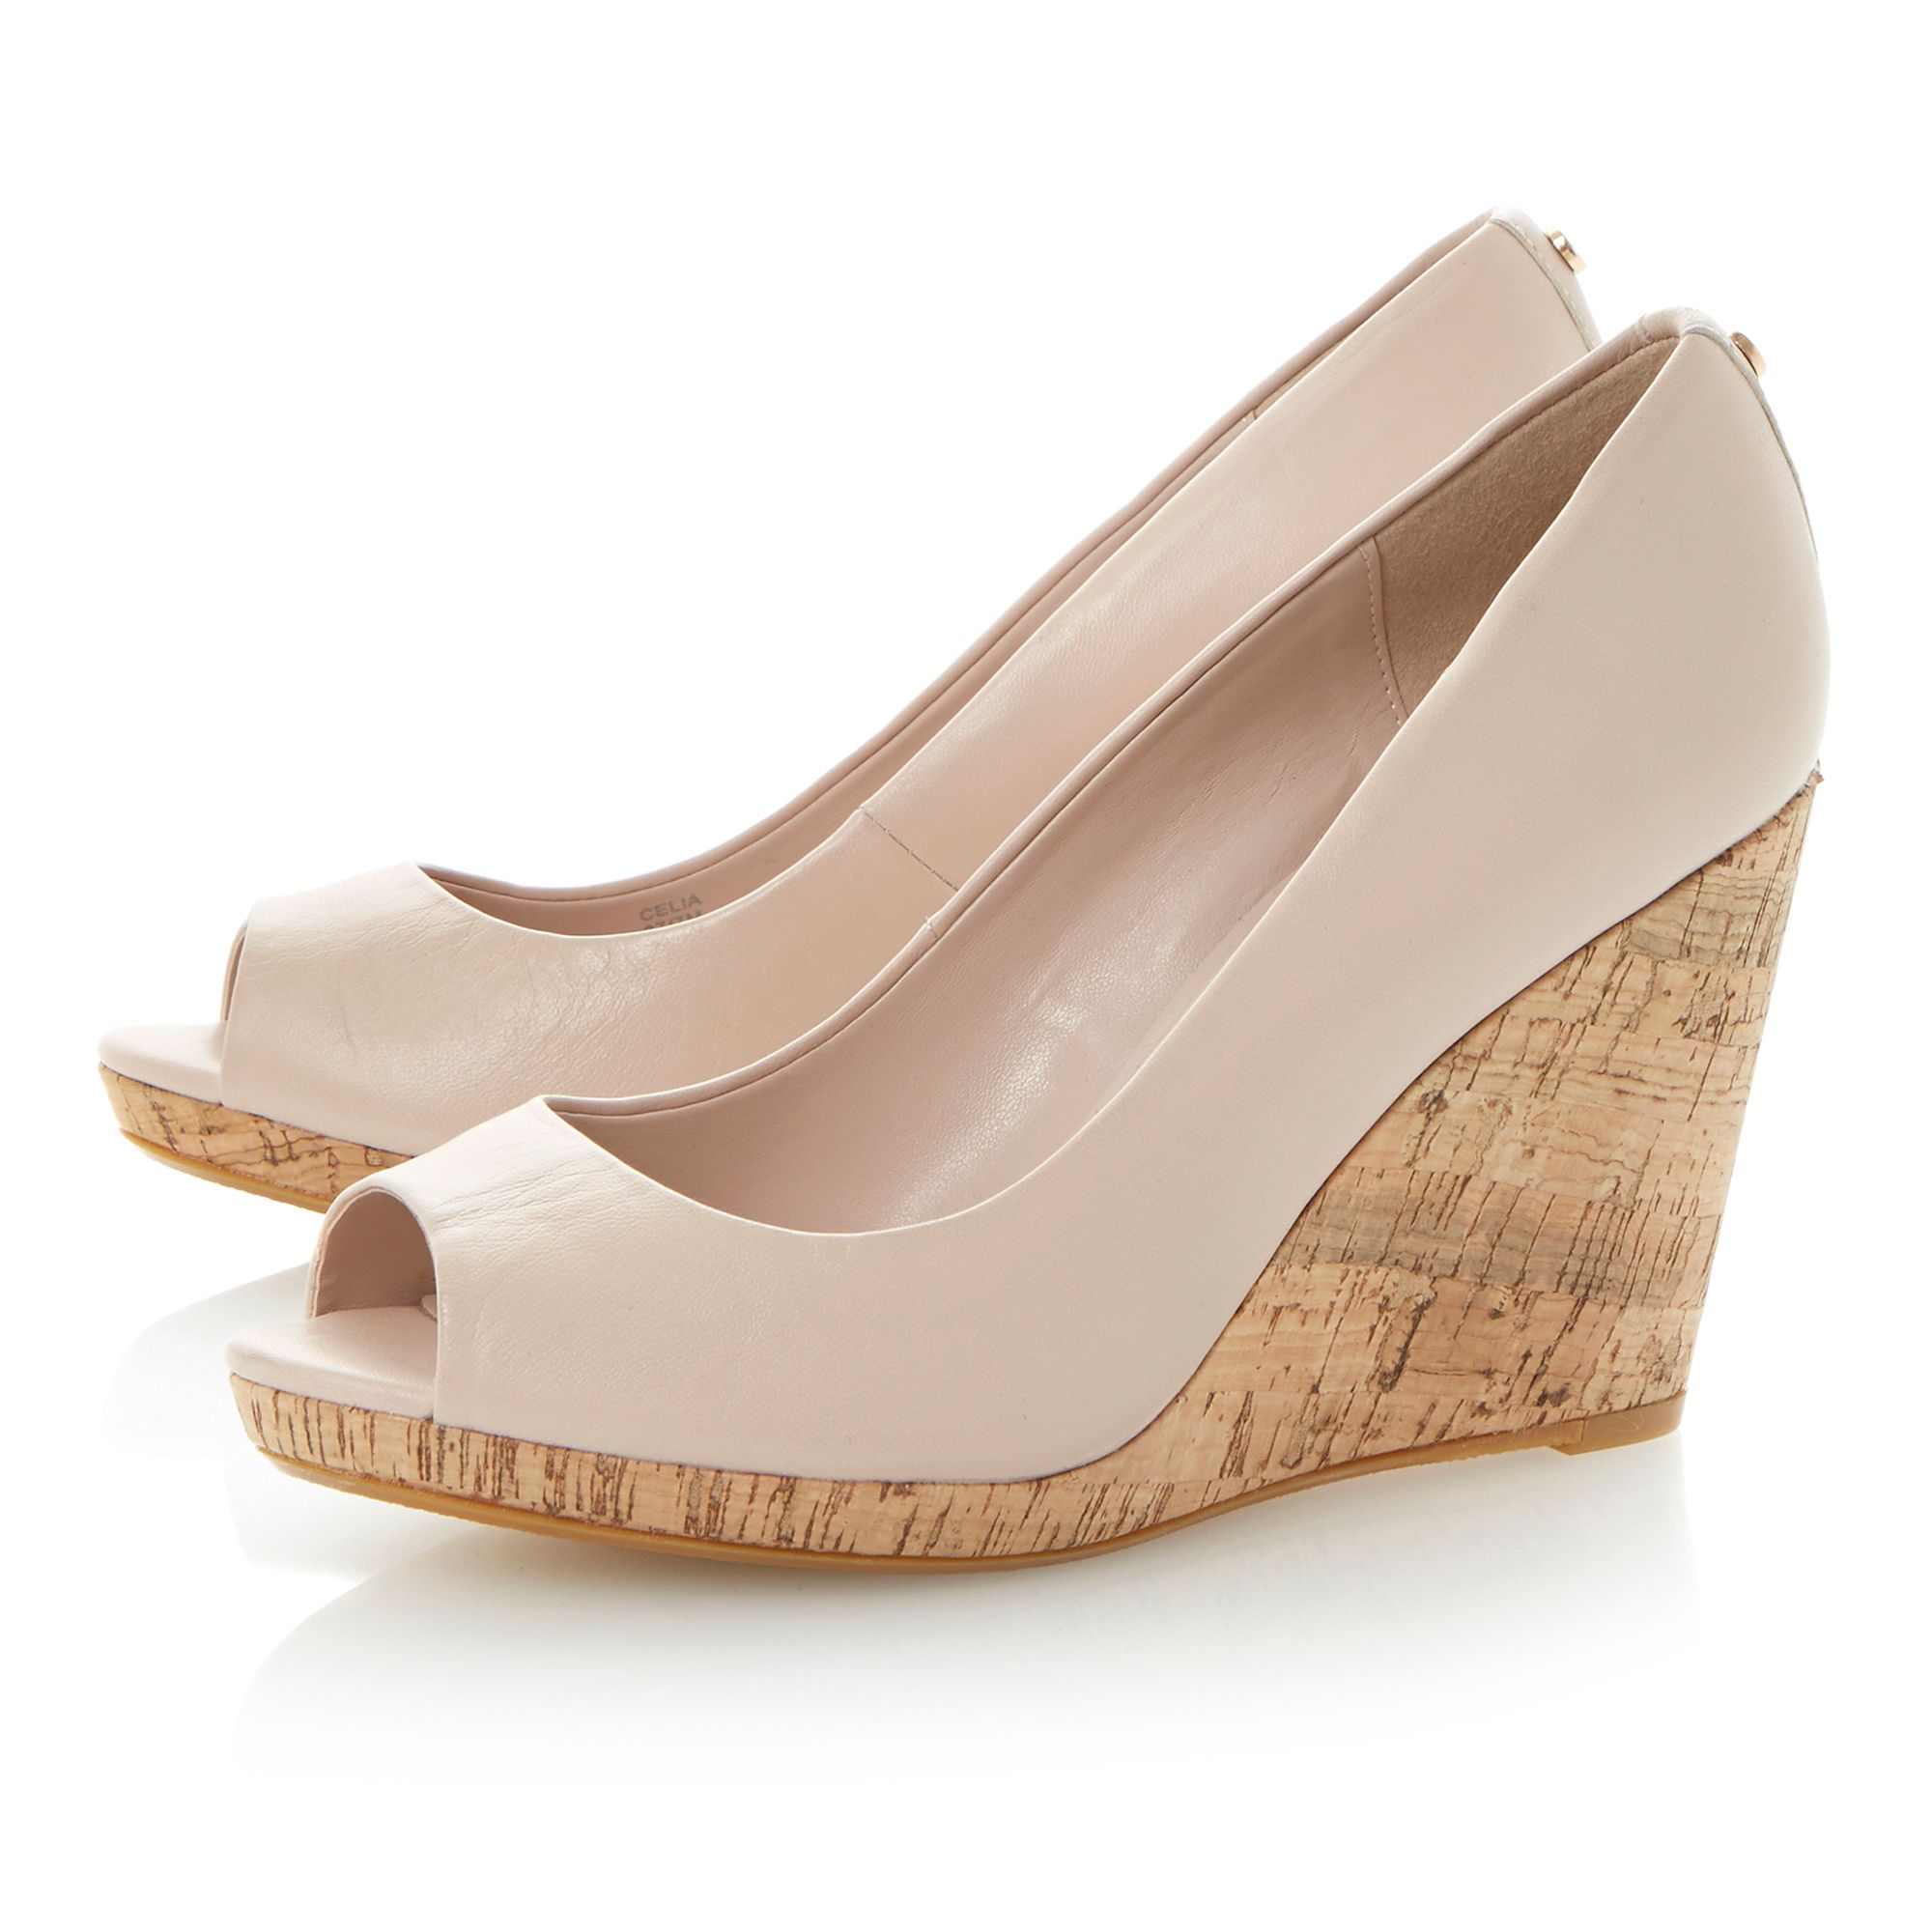 Celia leather peeptoe wedge court shoes